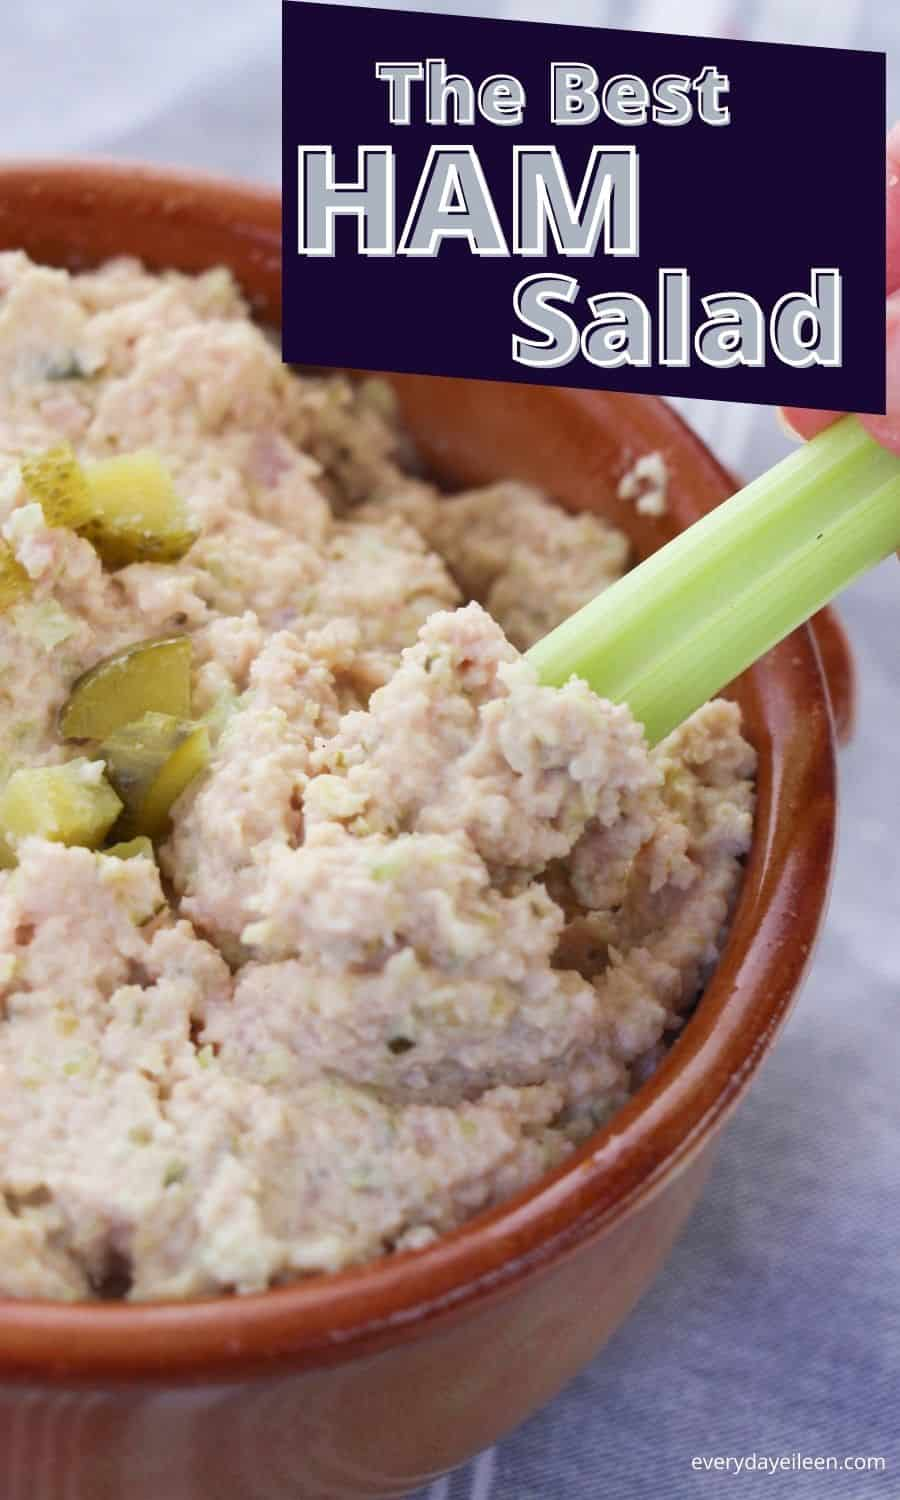 Ham Salad, absolutely delicious and a great recipe that can use leftover ham. A tasty salad made with diced ham and pickles in a mayonnaise based sauce. It's perfect on rolls or bread. Make it low-carb and serve in lettuce wraps or with veggies. #ham salad #leftoverhamrecipe #southern food #everydayeileen via @/everydayeileen/